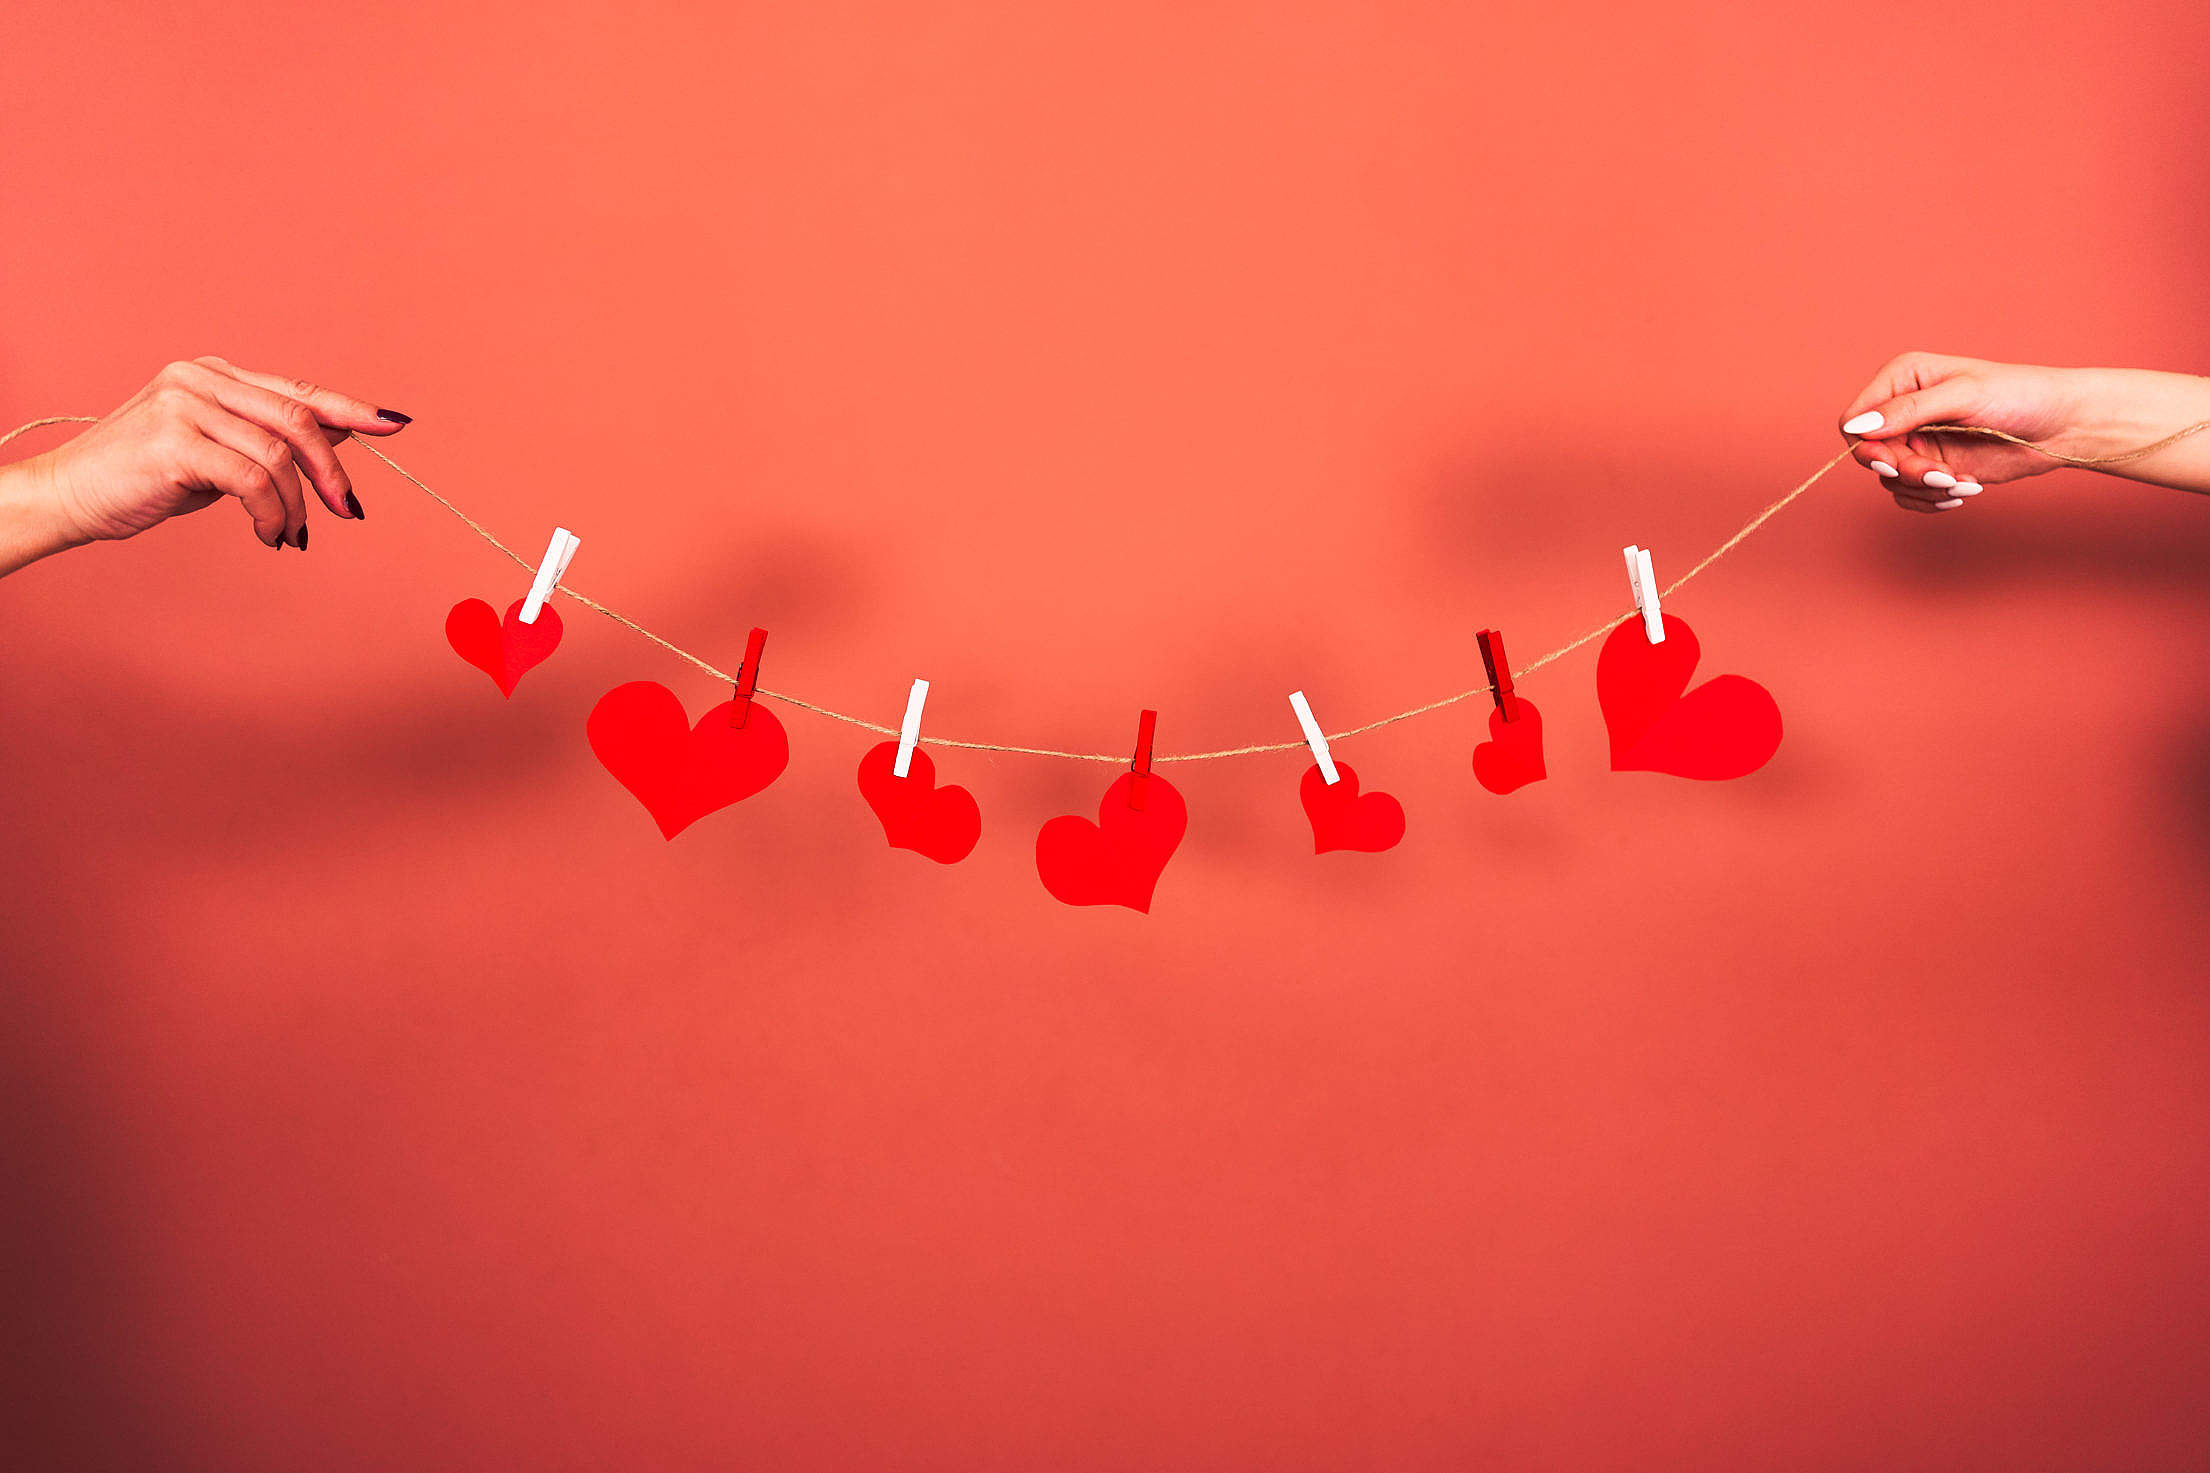 Red Hearts Hanging on a String Free Stock Photo